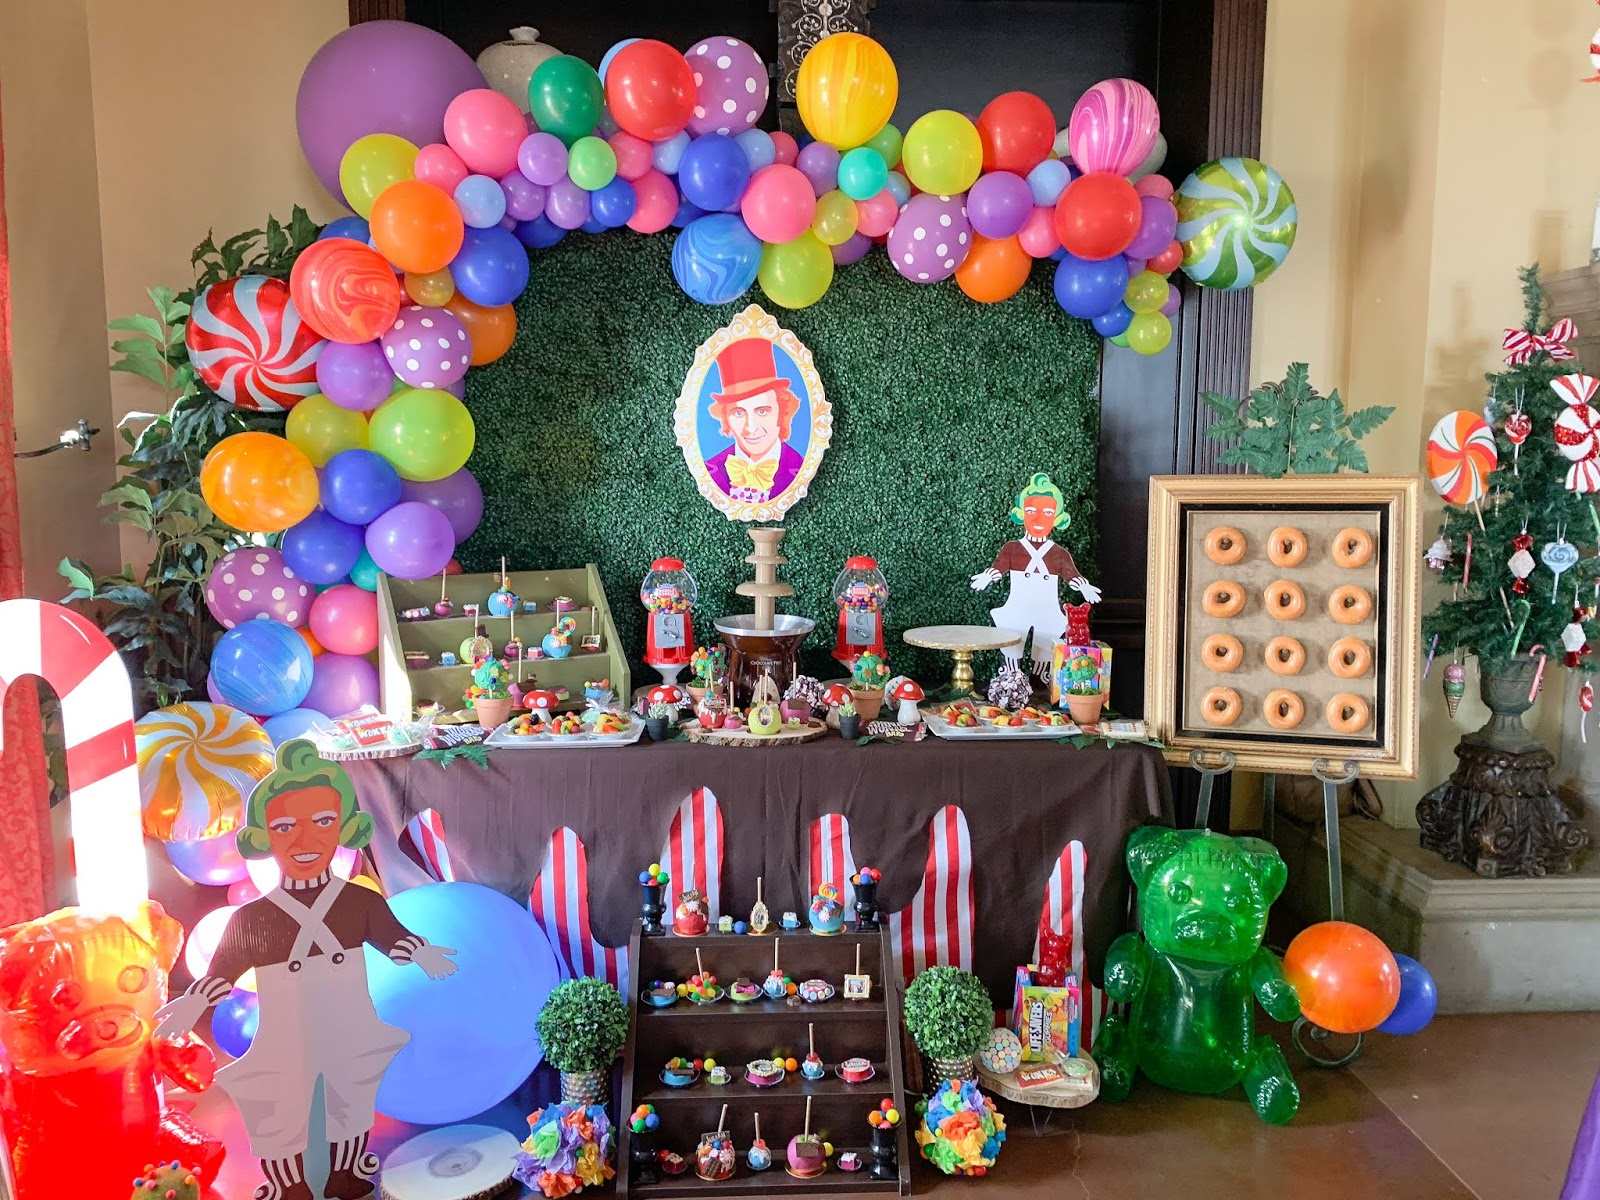 most extravagant birthday party, extravagant wonka dessert table